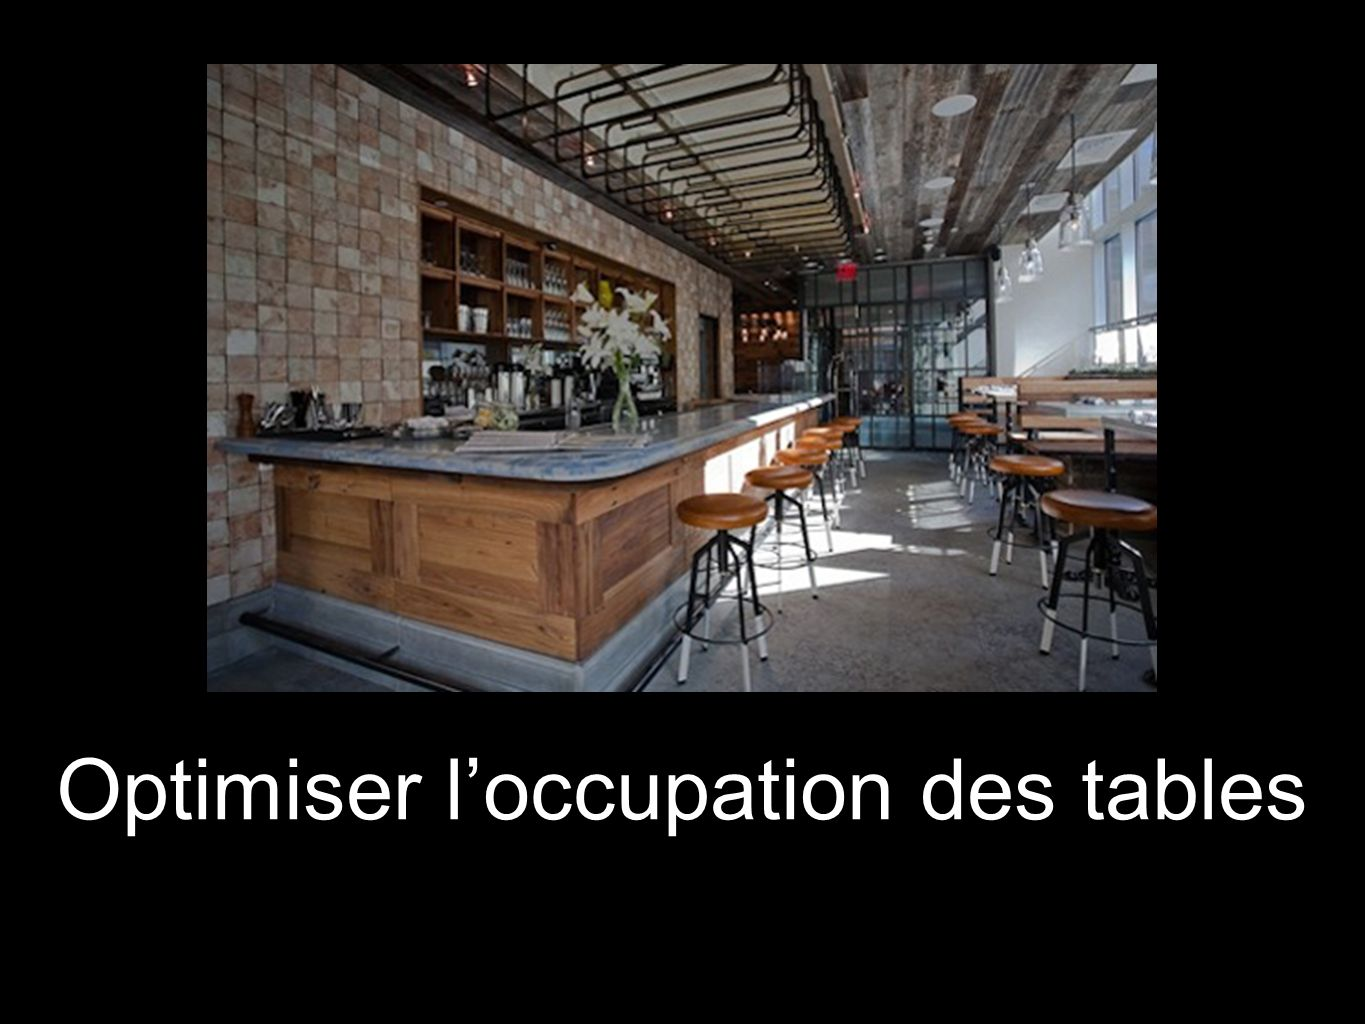 Optimiser l'occupation des tables